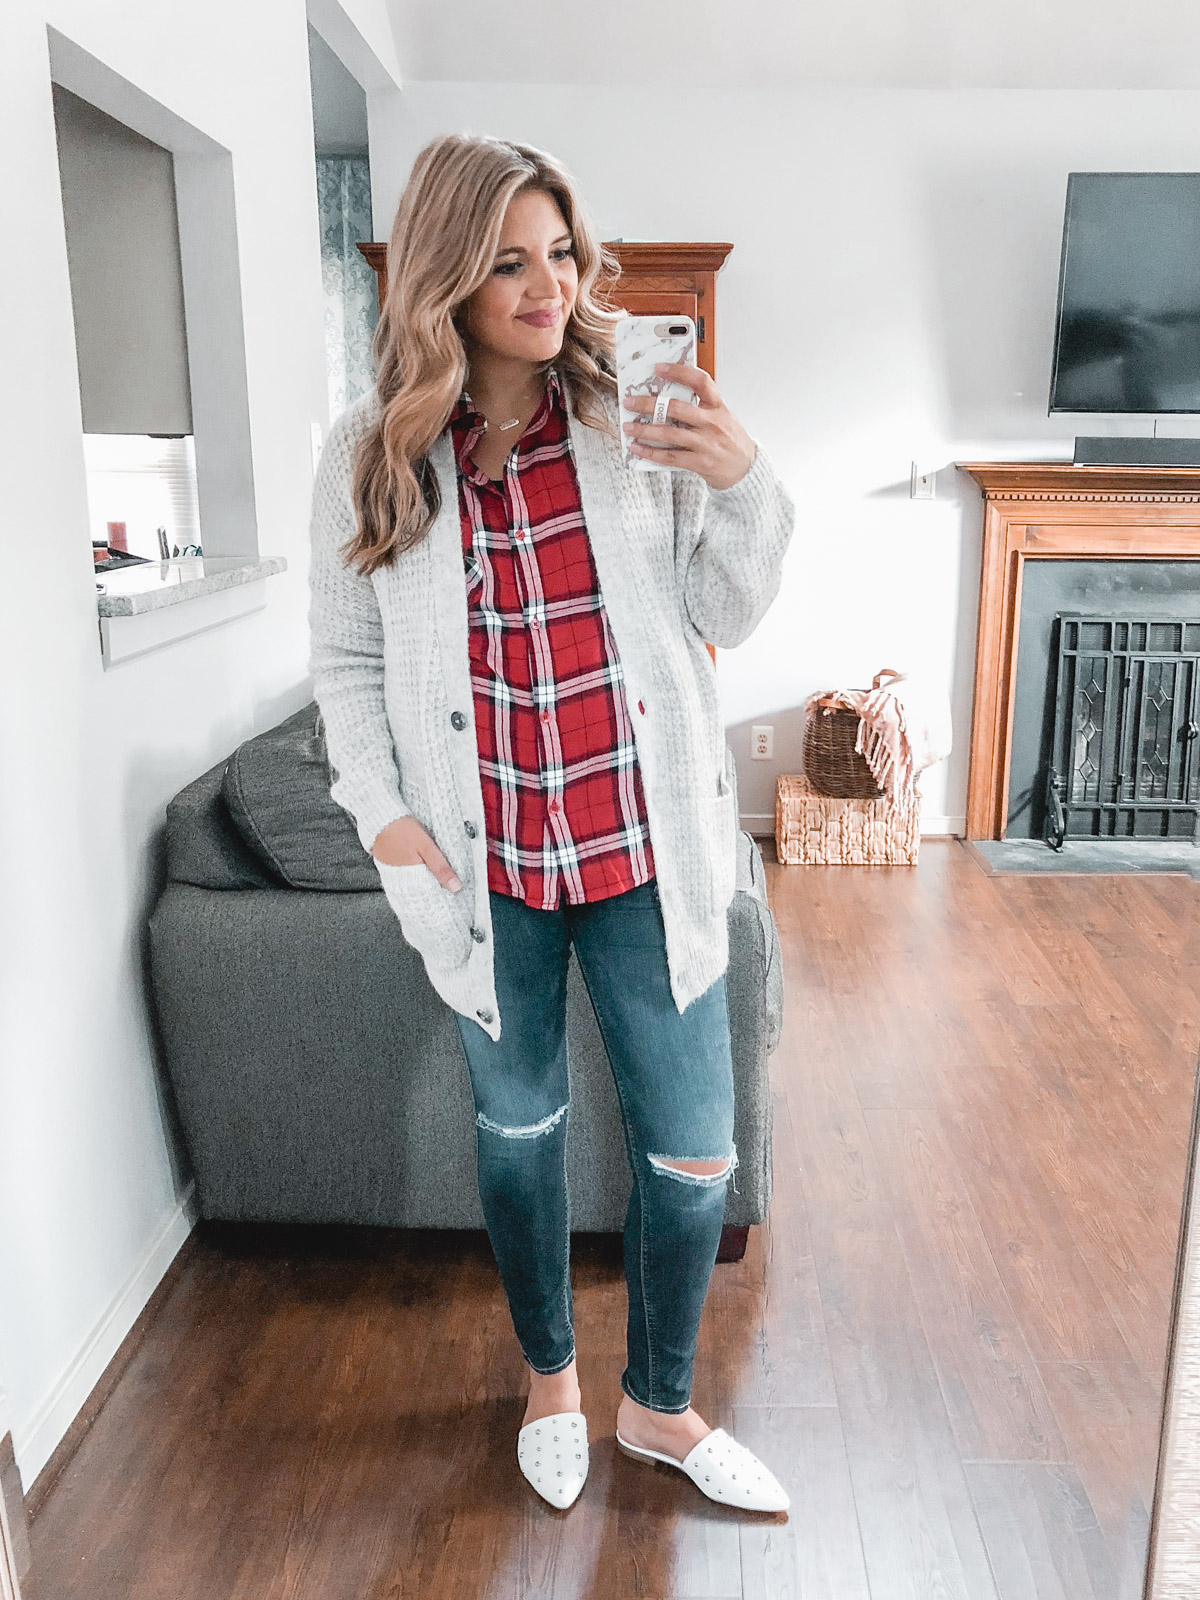 best plaid top outfit ideas: grandpa cardigan with distressed jeans and studded mules - Need plaid top outfit ideas? I'm sharing one $31 plaid top styled 15 different ways on bylaurenm.com!